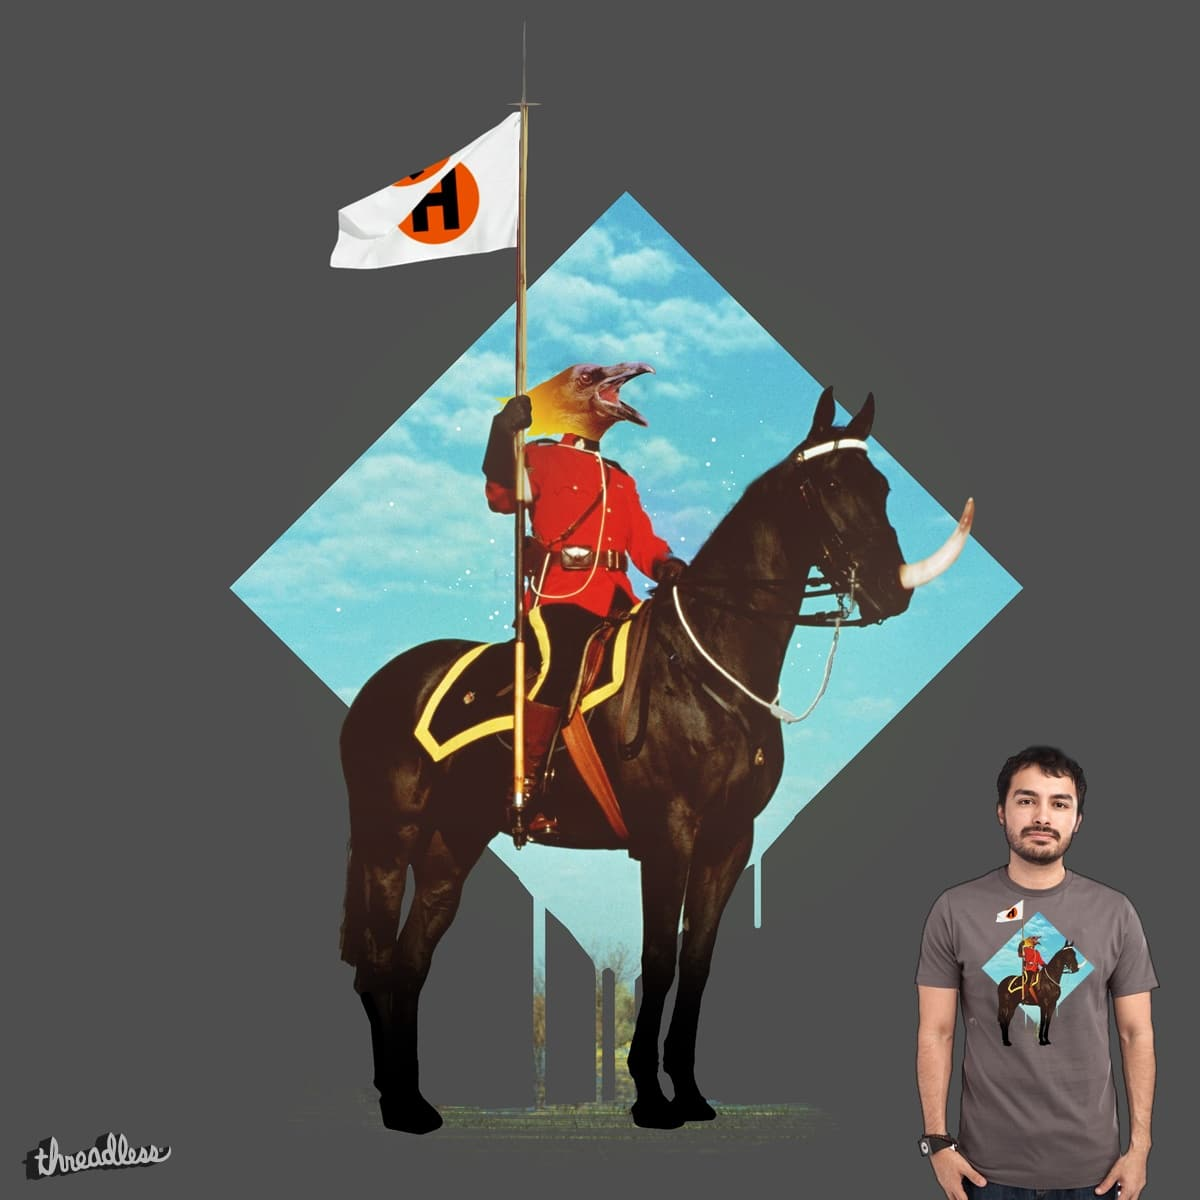 Sous-commissaire MKII by fightstacy on Threadless